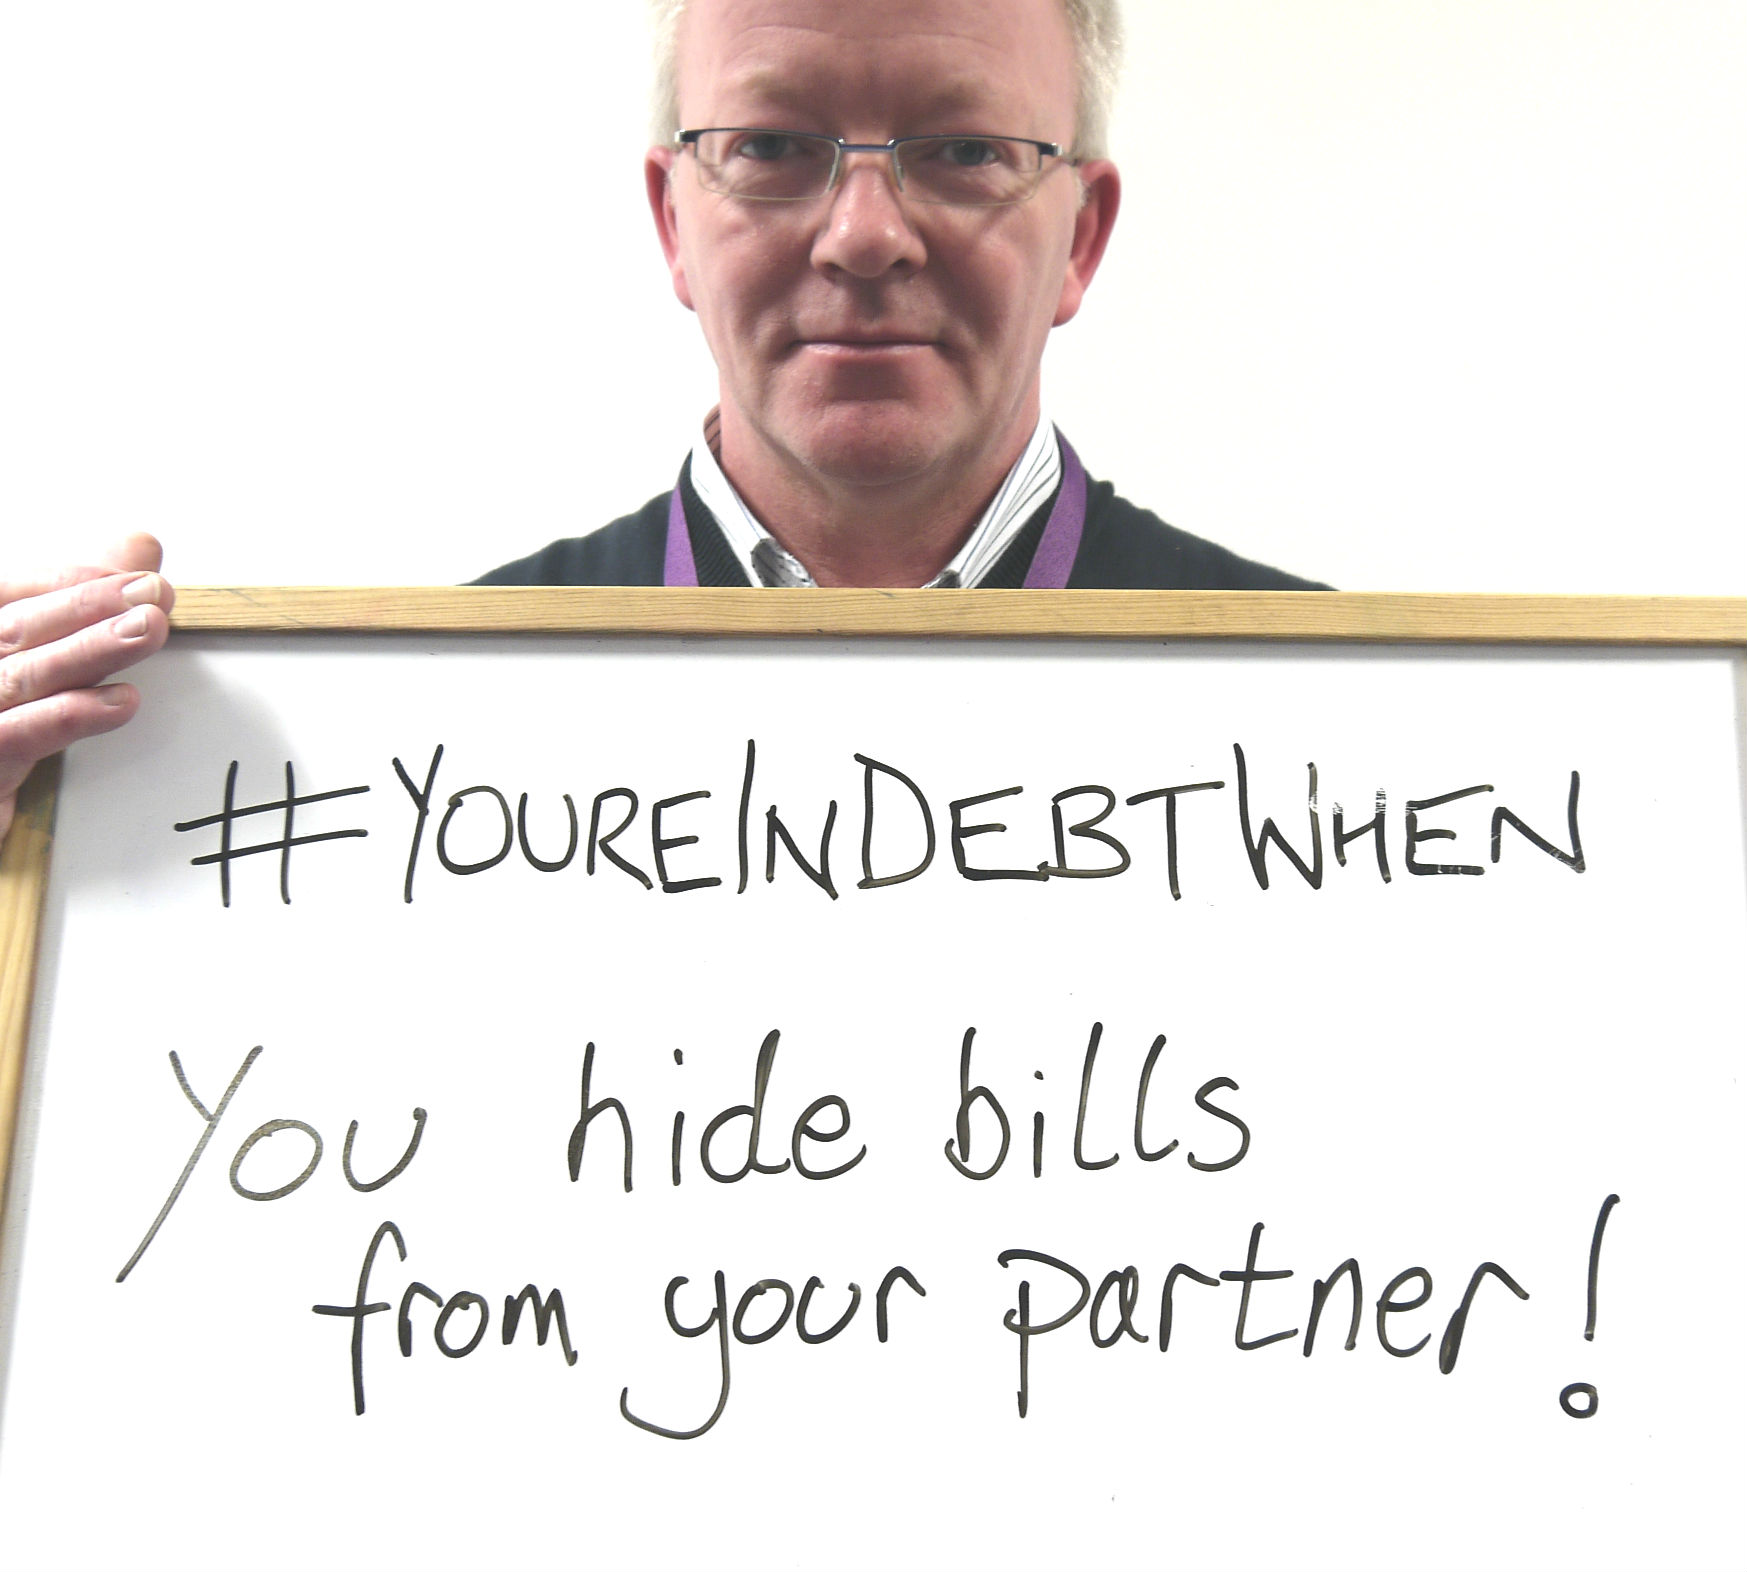 Hiding bills from your partner is a danger sign of debt